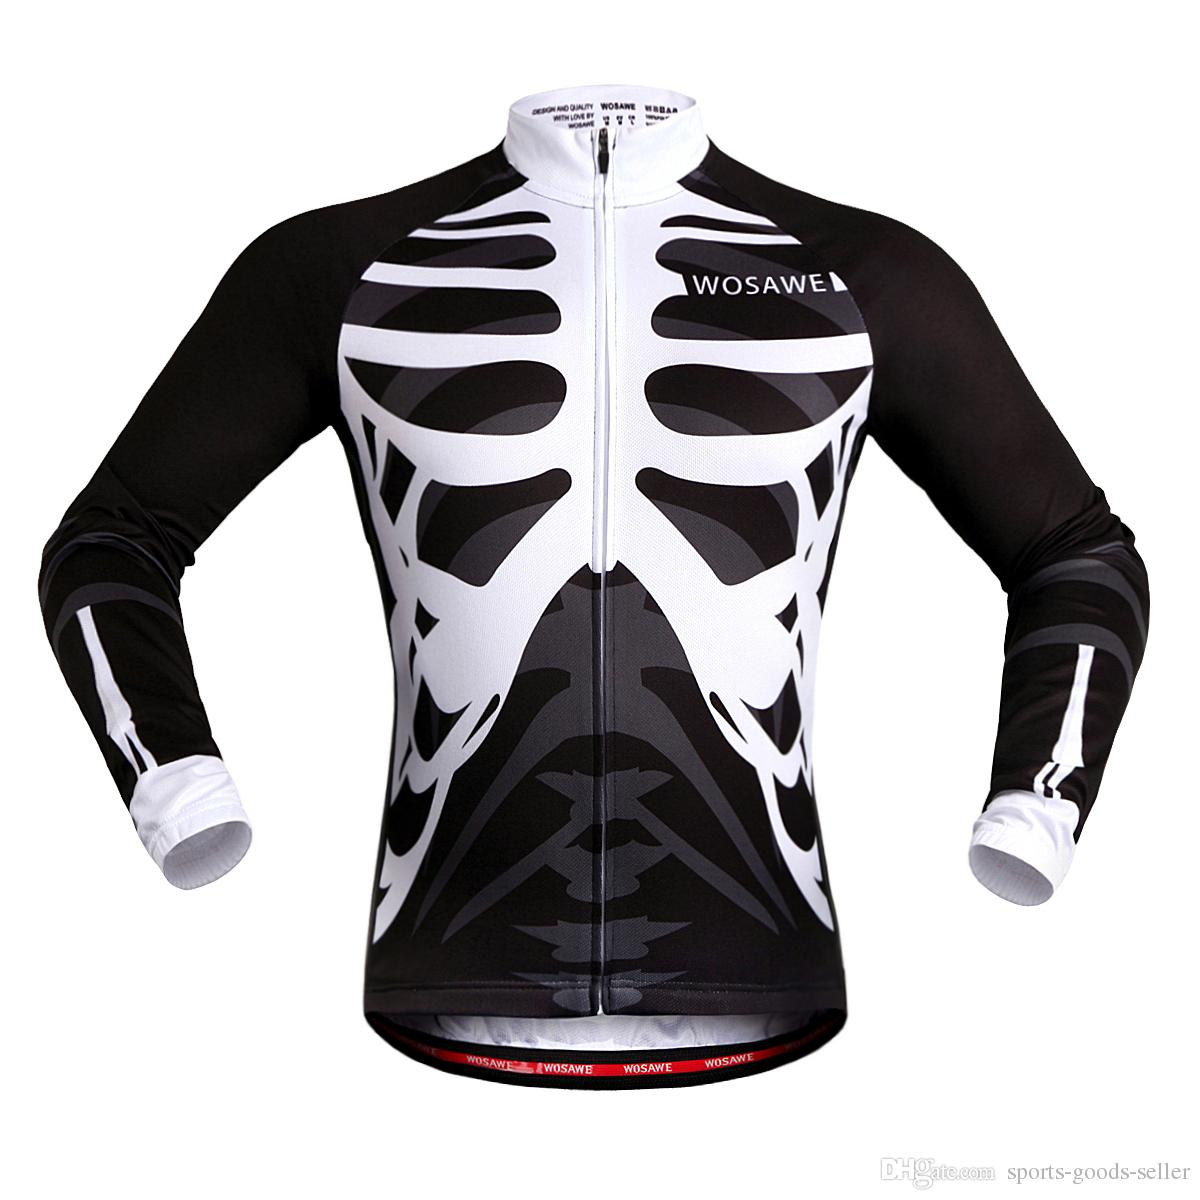 WOSAWE Sublimation Printing Cycling Jersey Clothing Polyester Bicycle Shape  Summer For Men Quick Drying Bike Clothing Jacket Windproof Cycle Jacket  Cycling ... 1067b596d